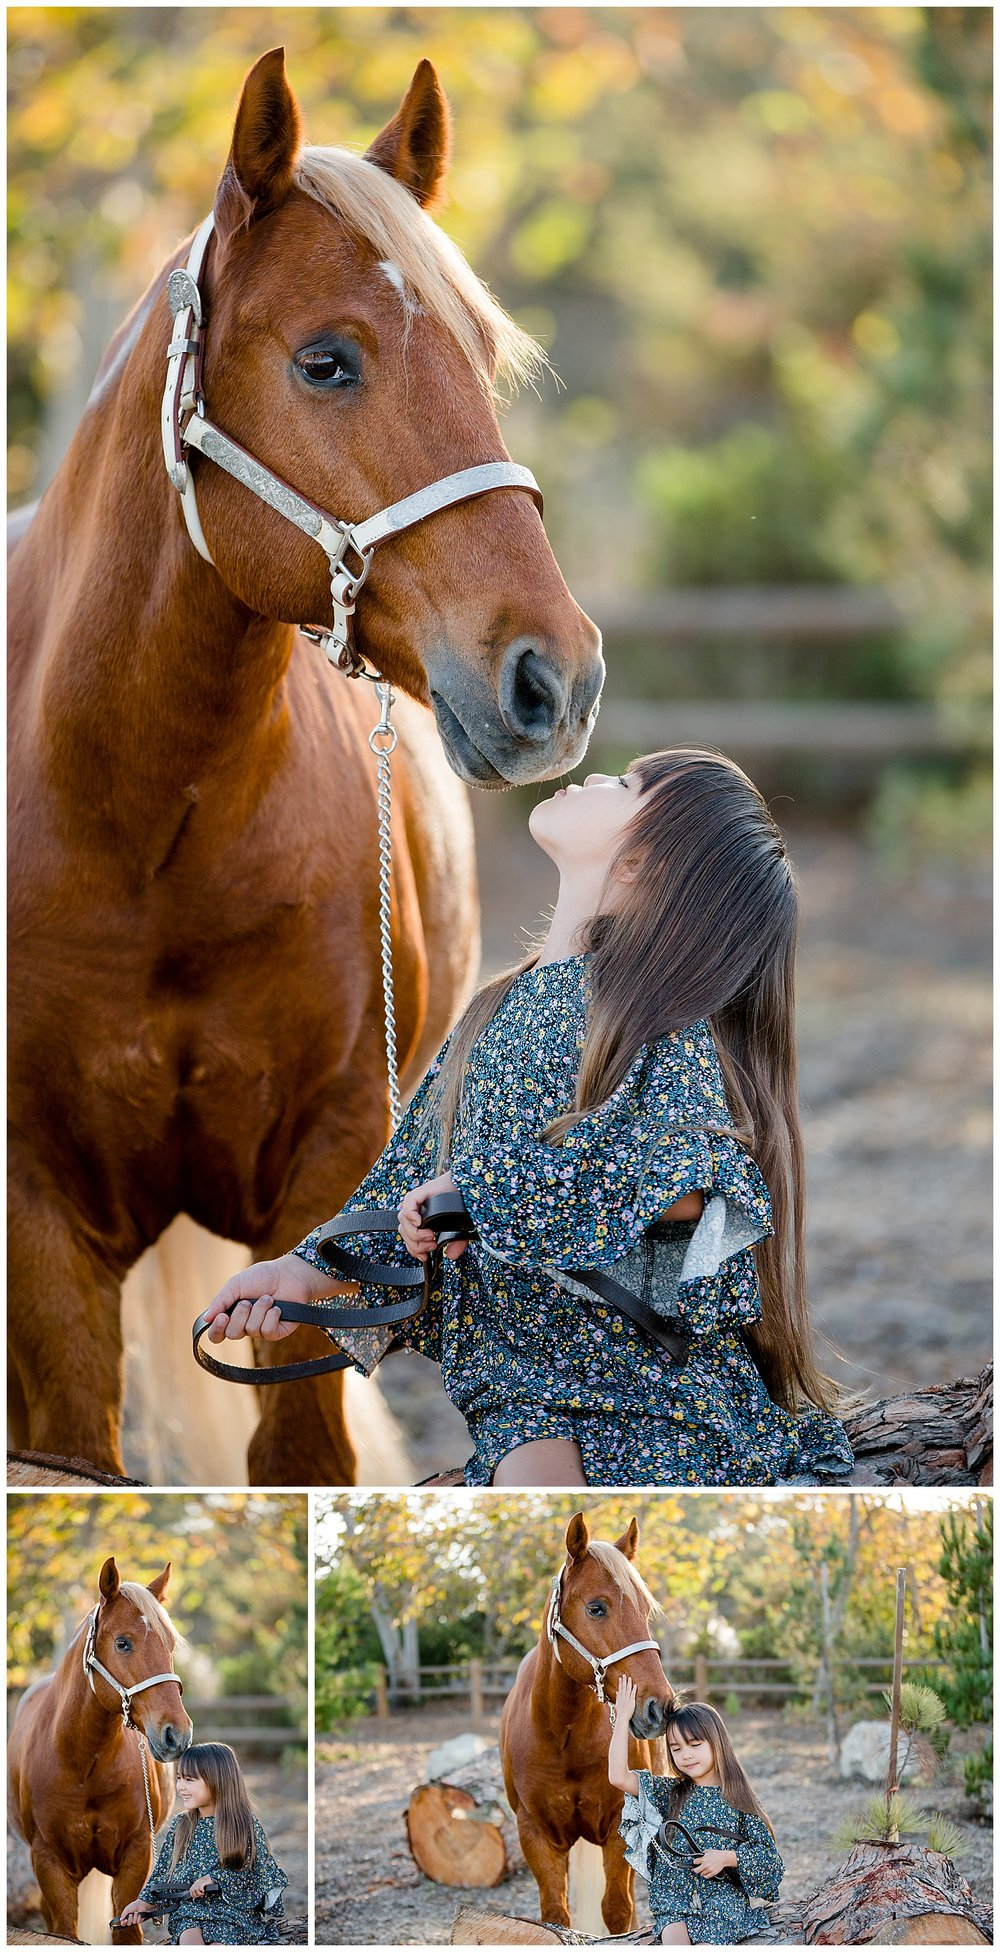 Black Background Horse Rider Equine Photographer Southern California Sara Shier Photography SoCal Equestrian Cowgirl_0280.jpg